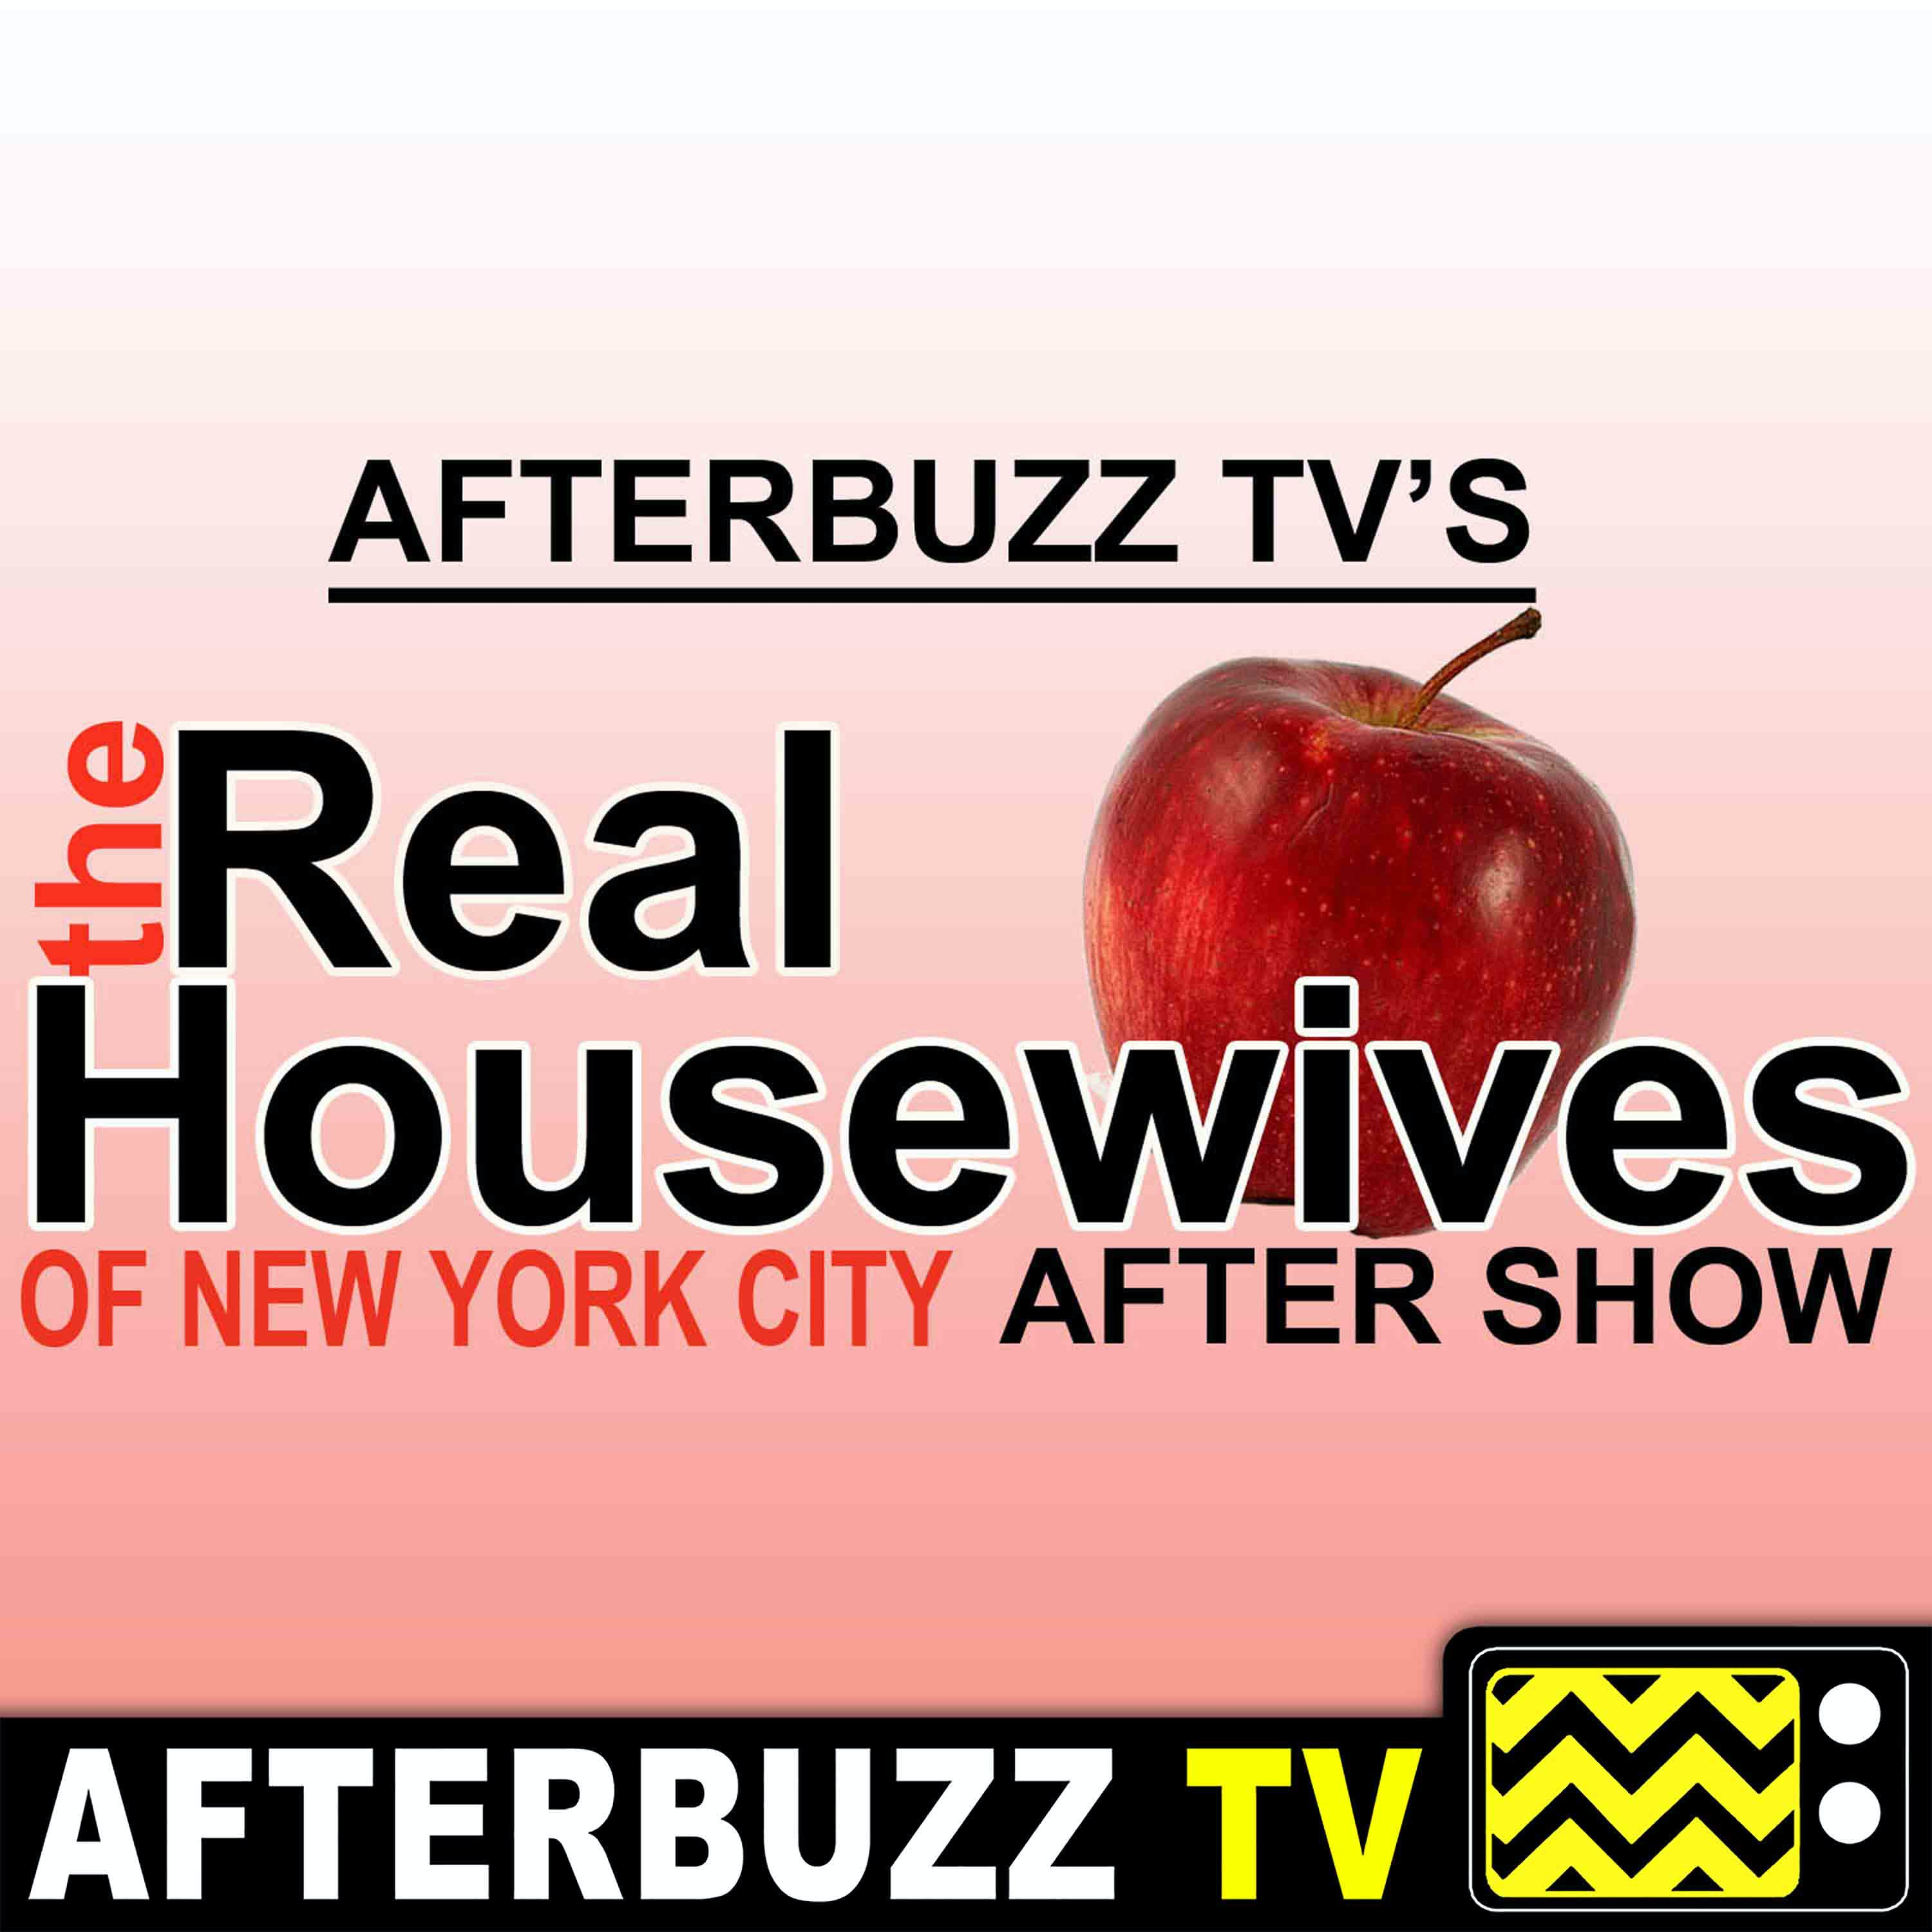 Tattoos, a Bucket Hat, and Frose - S11 E20 'Real Housewives of NYC' Recap & Review